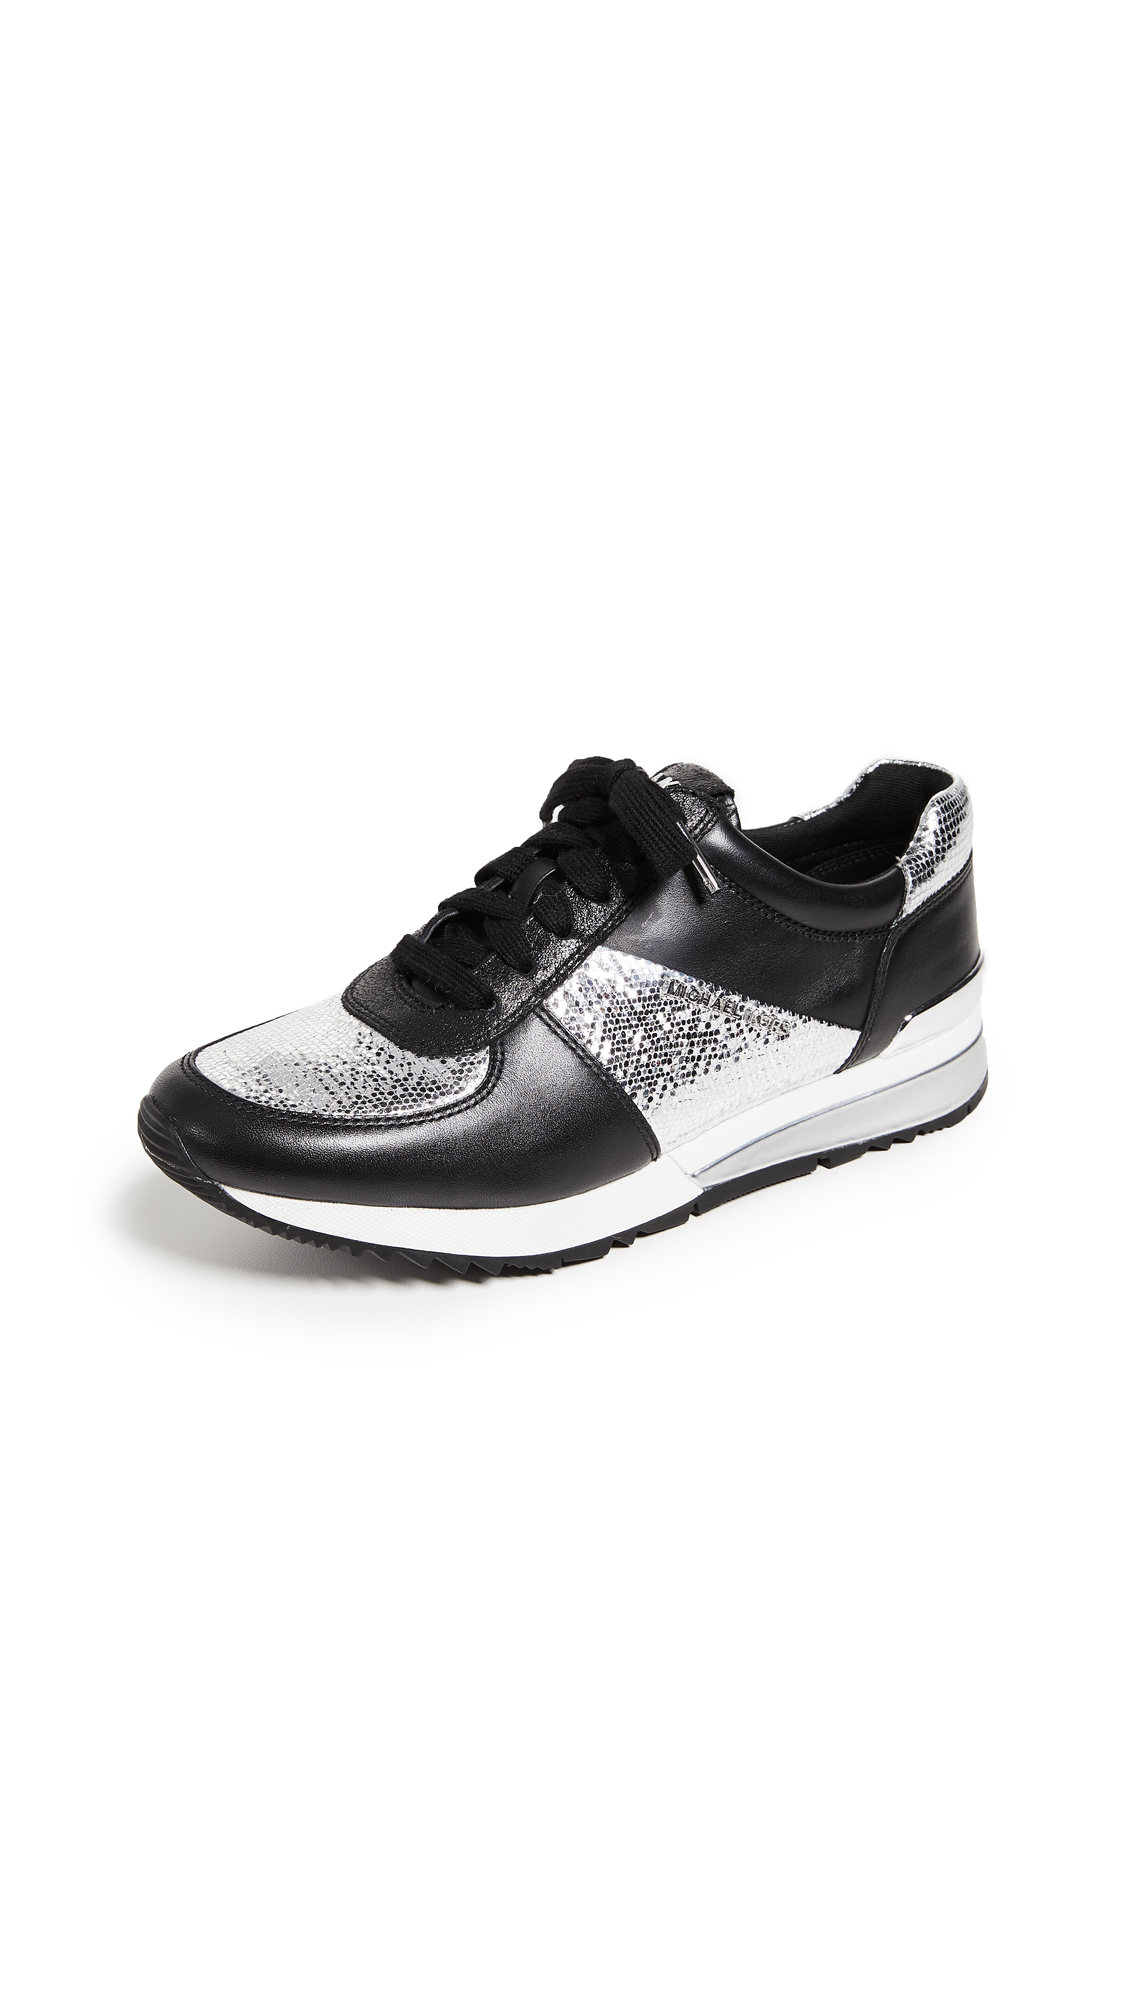 MICHAEL Michael Kors Allie Wrap Trainers - Silver/Black